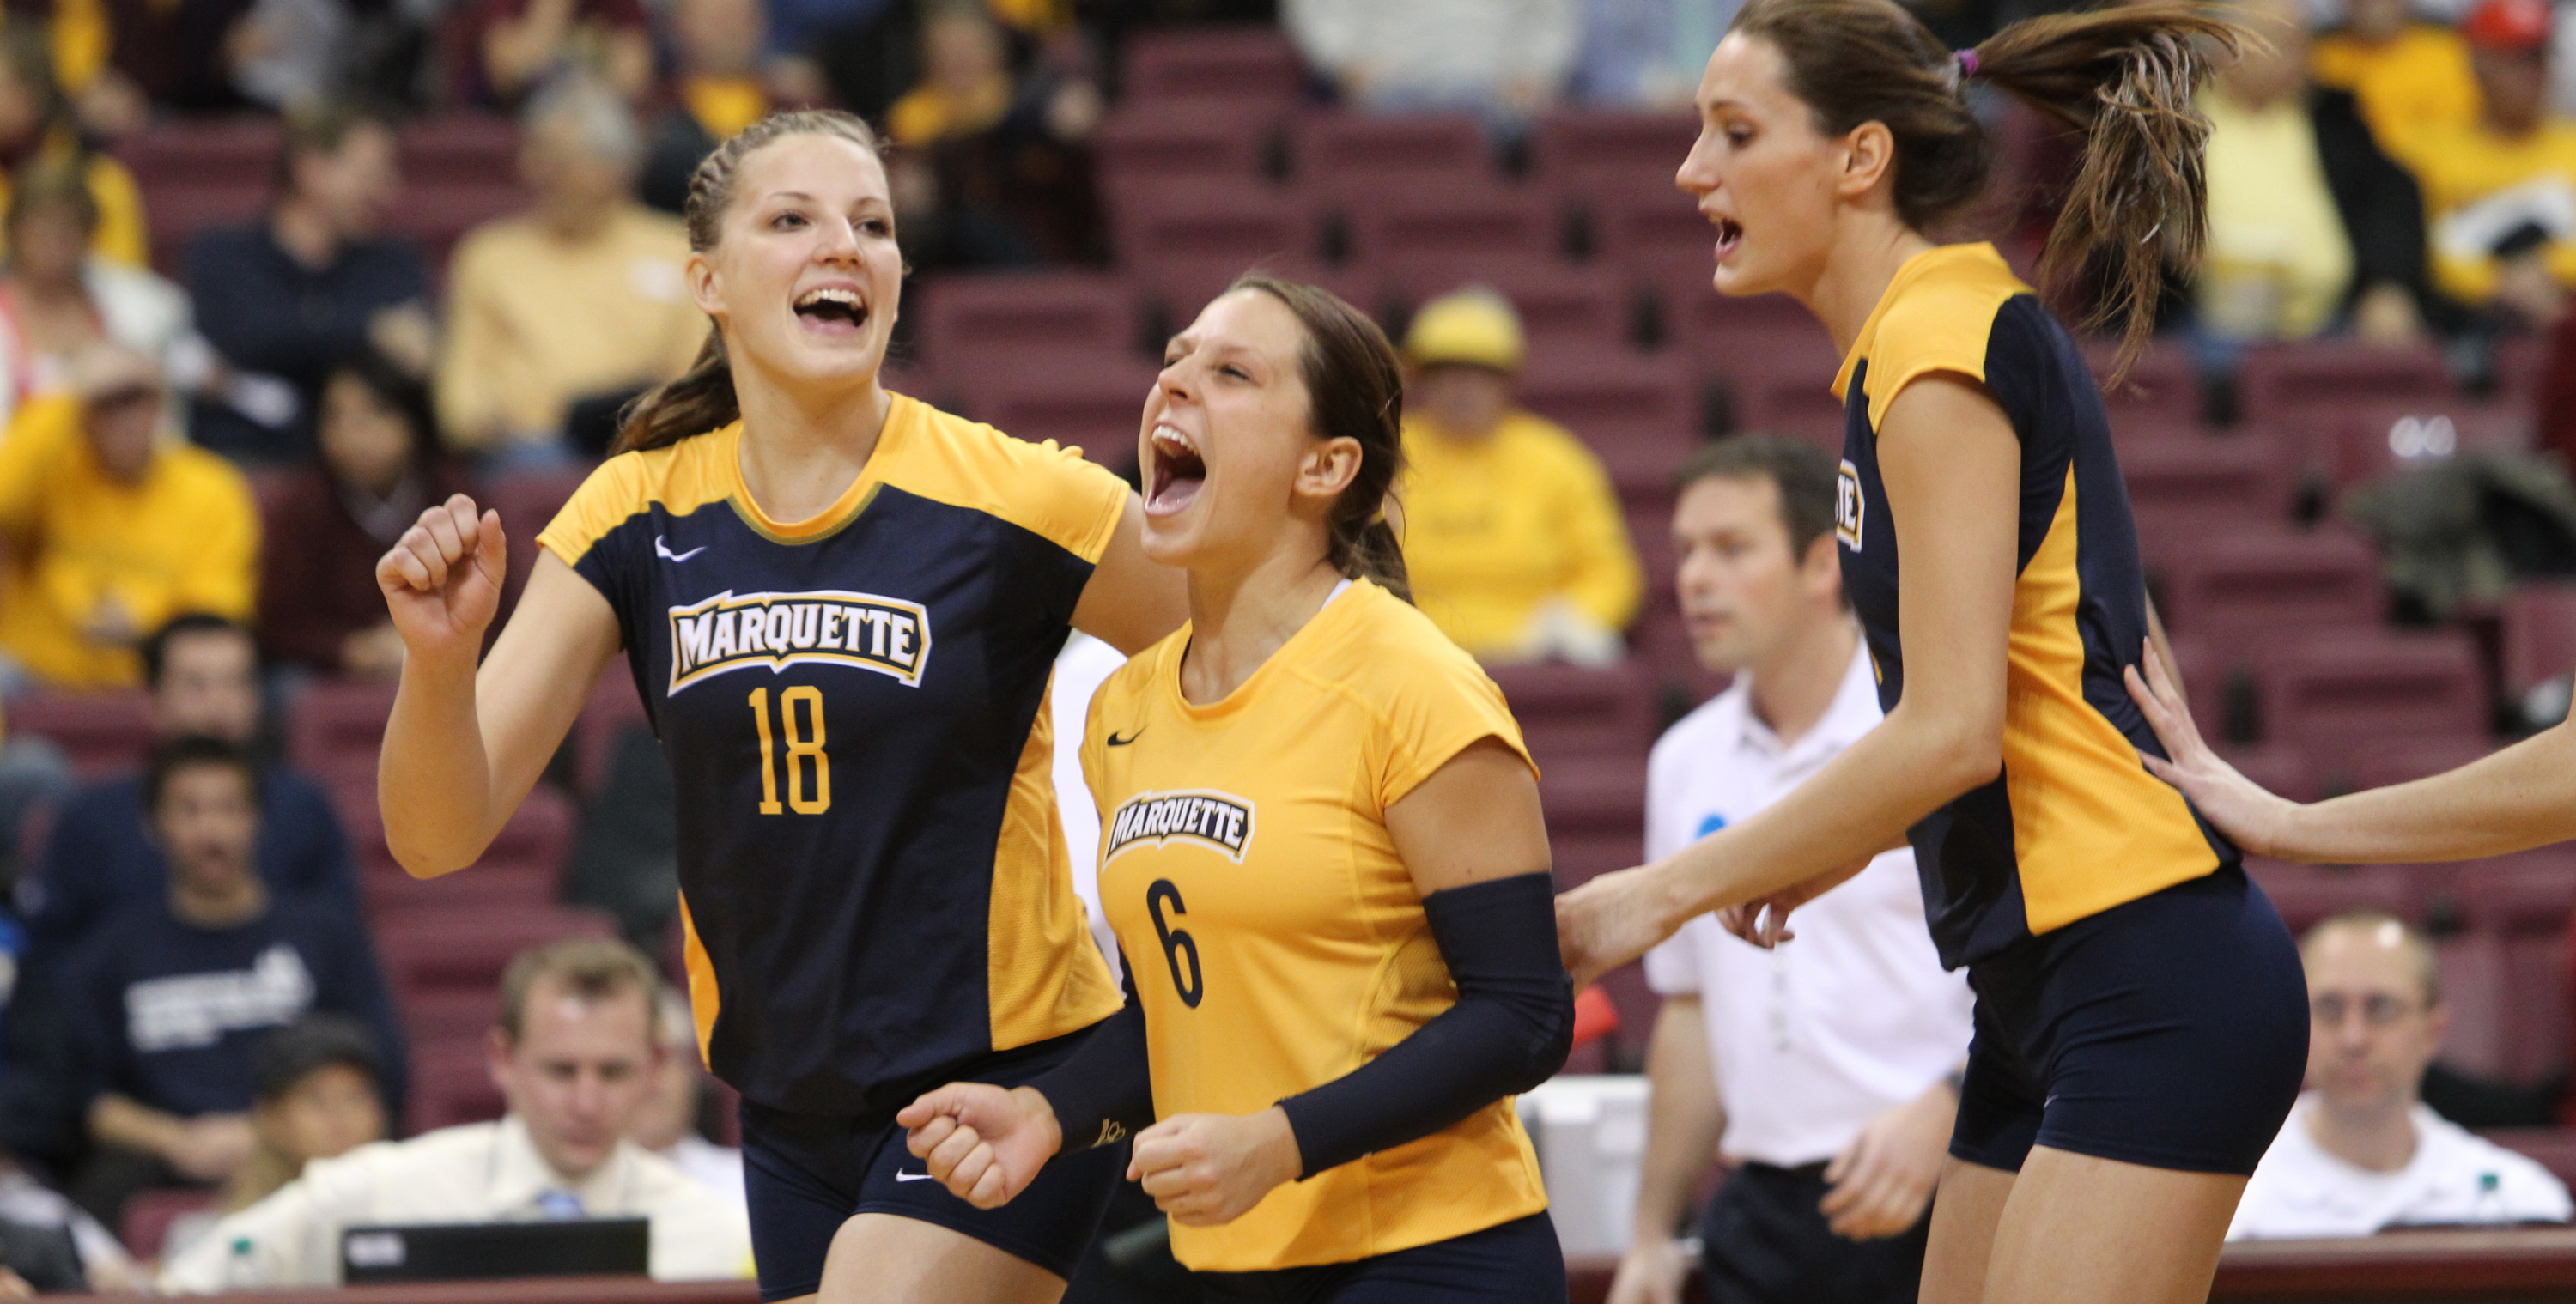 Libero Julie Jeziorowski will lead the Golden Eagles against a program from her home state of Illinois.